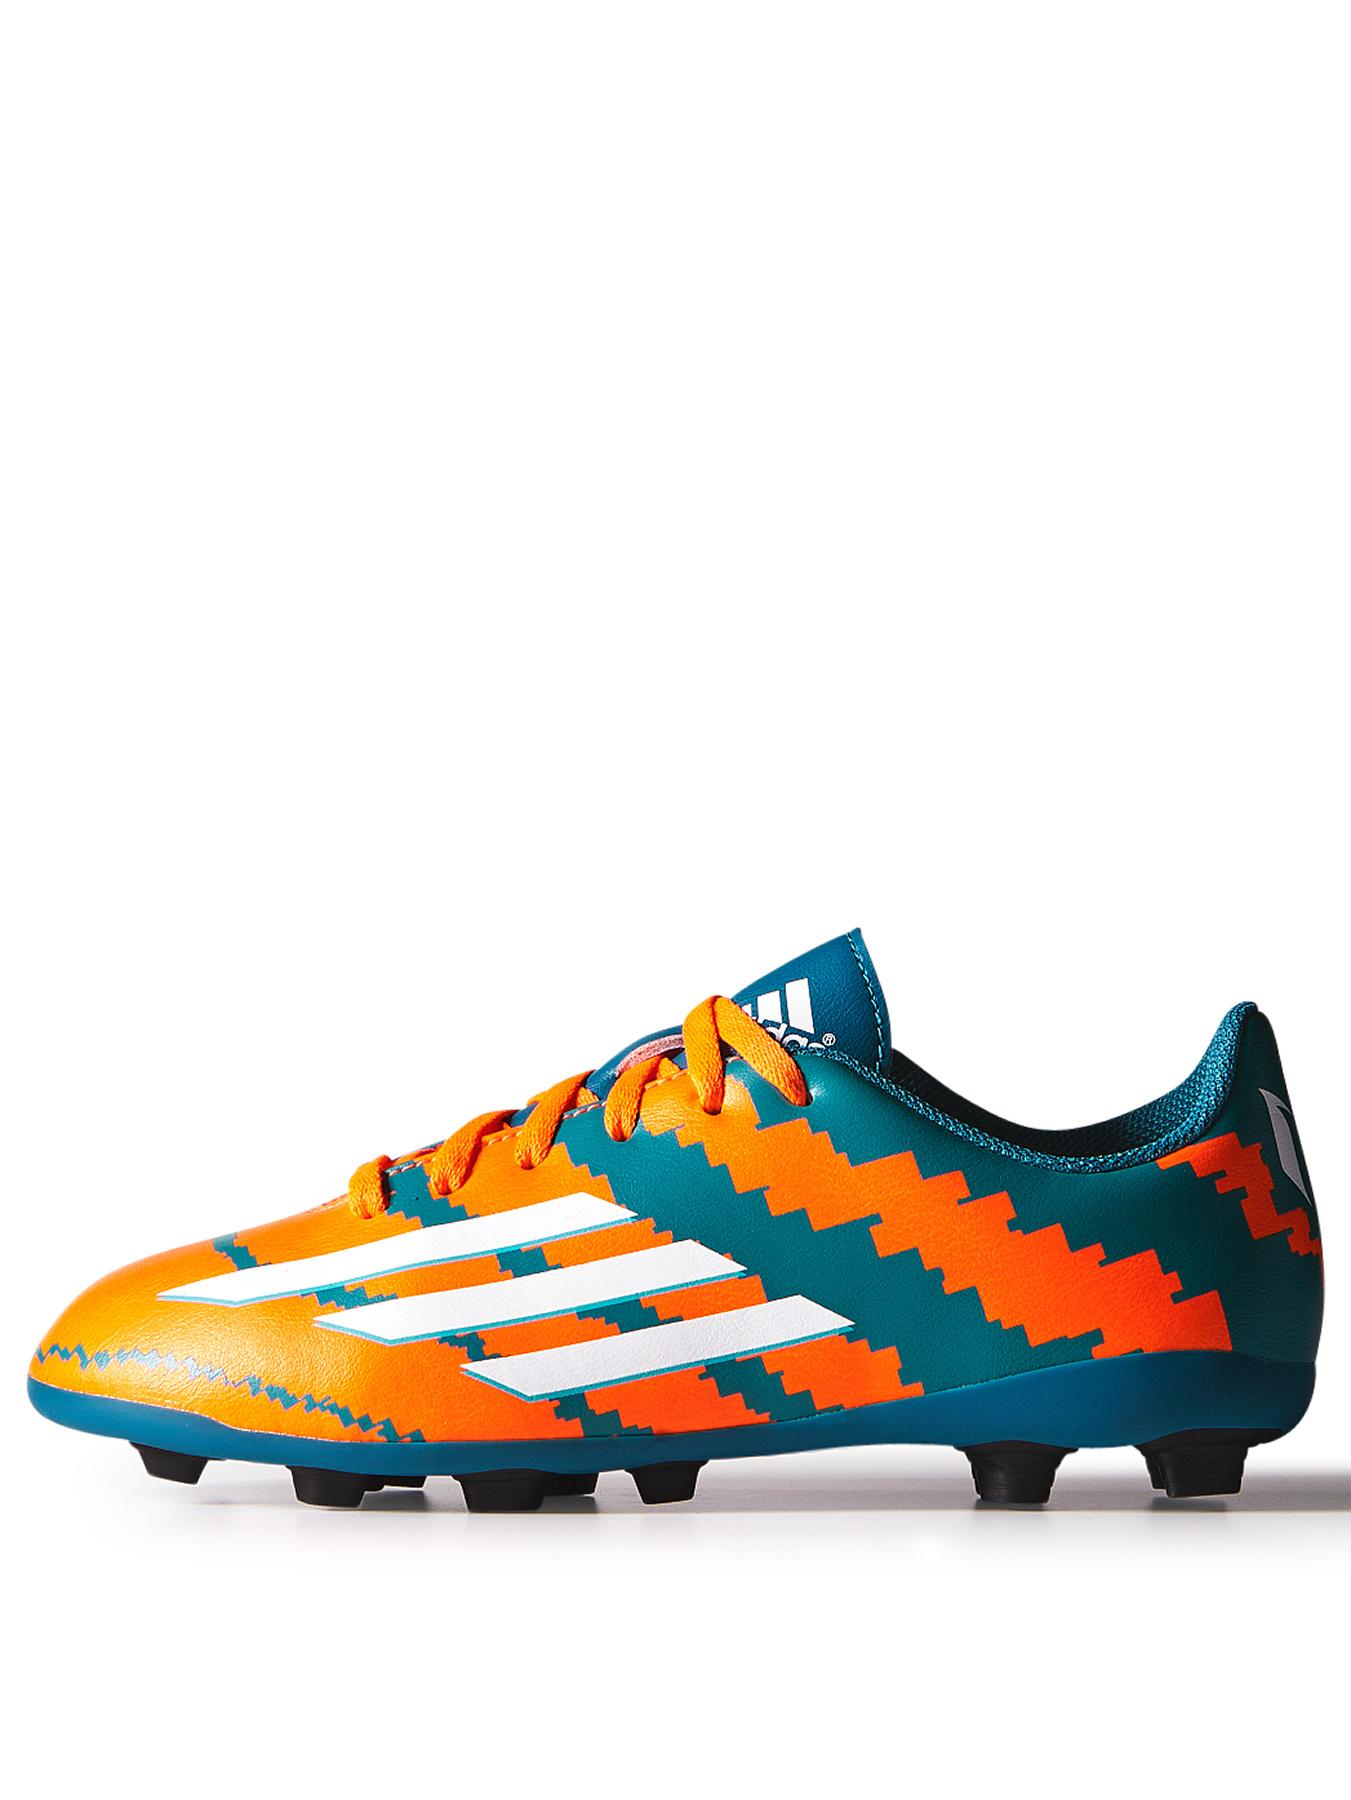 adidas Junior Messi 10.4 Firm Ground Football Boots - Orange, Orange